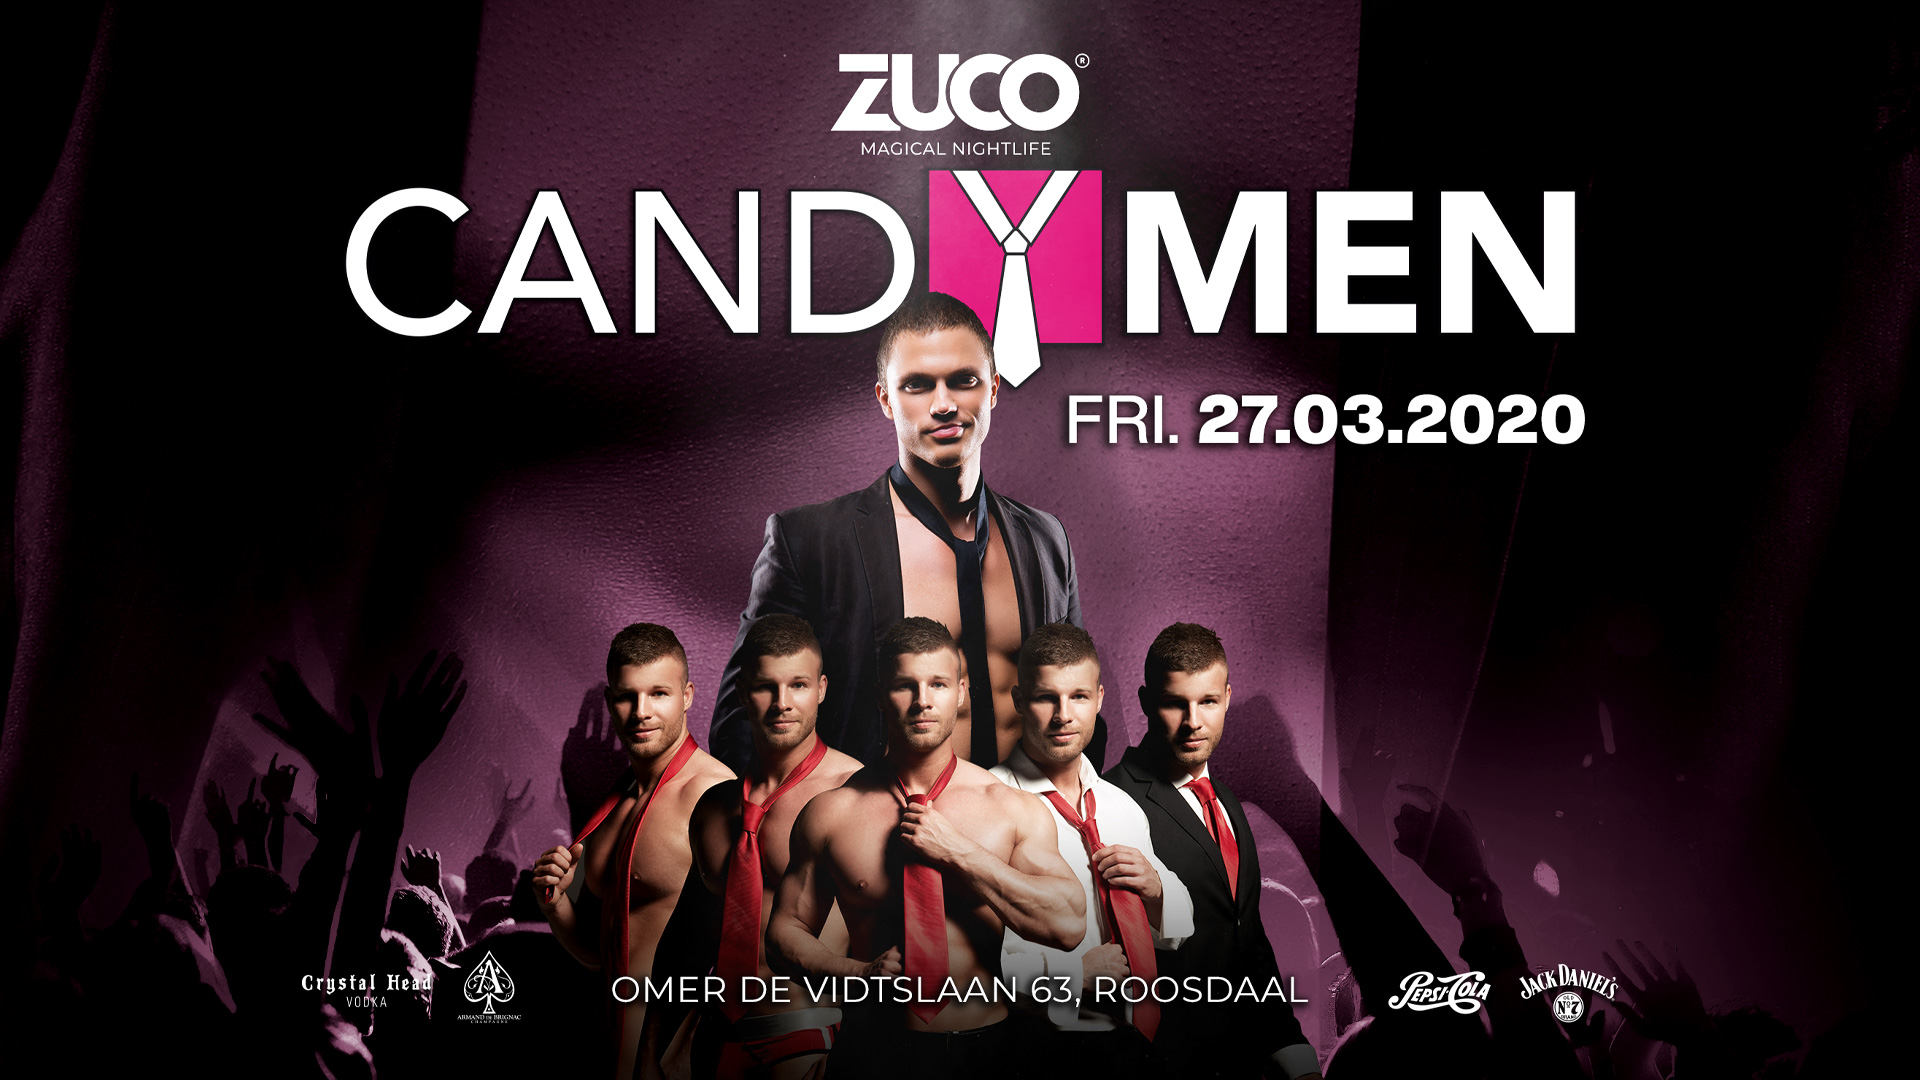 Candymen ft. ZUCO